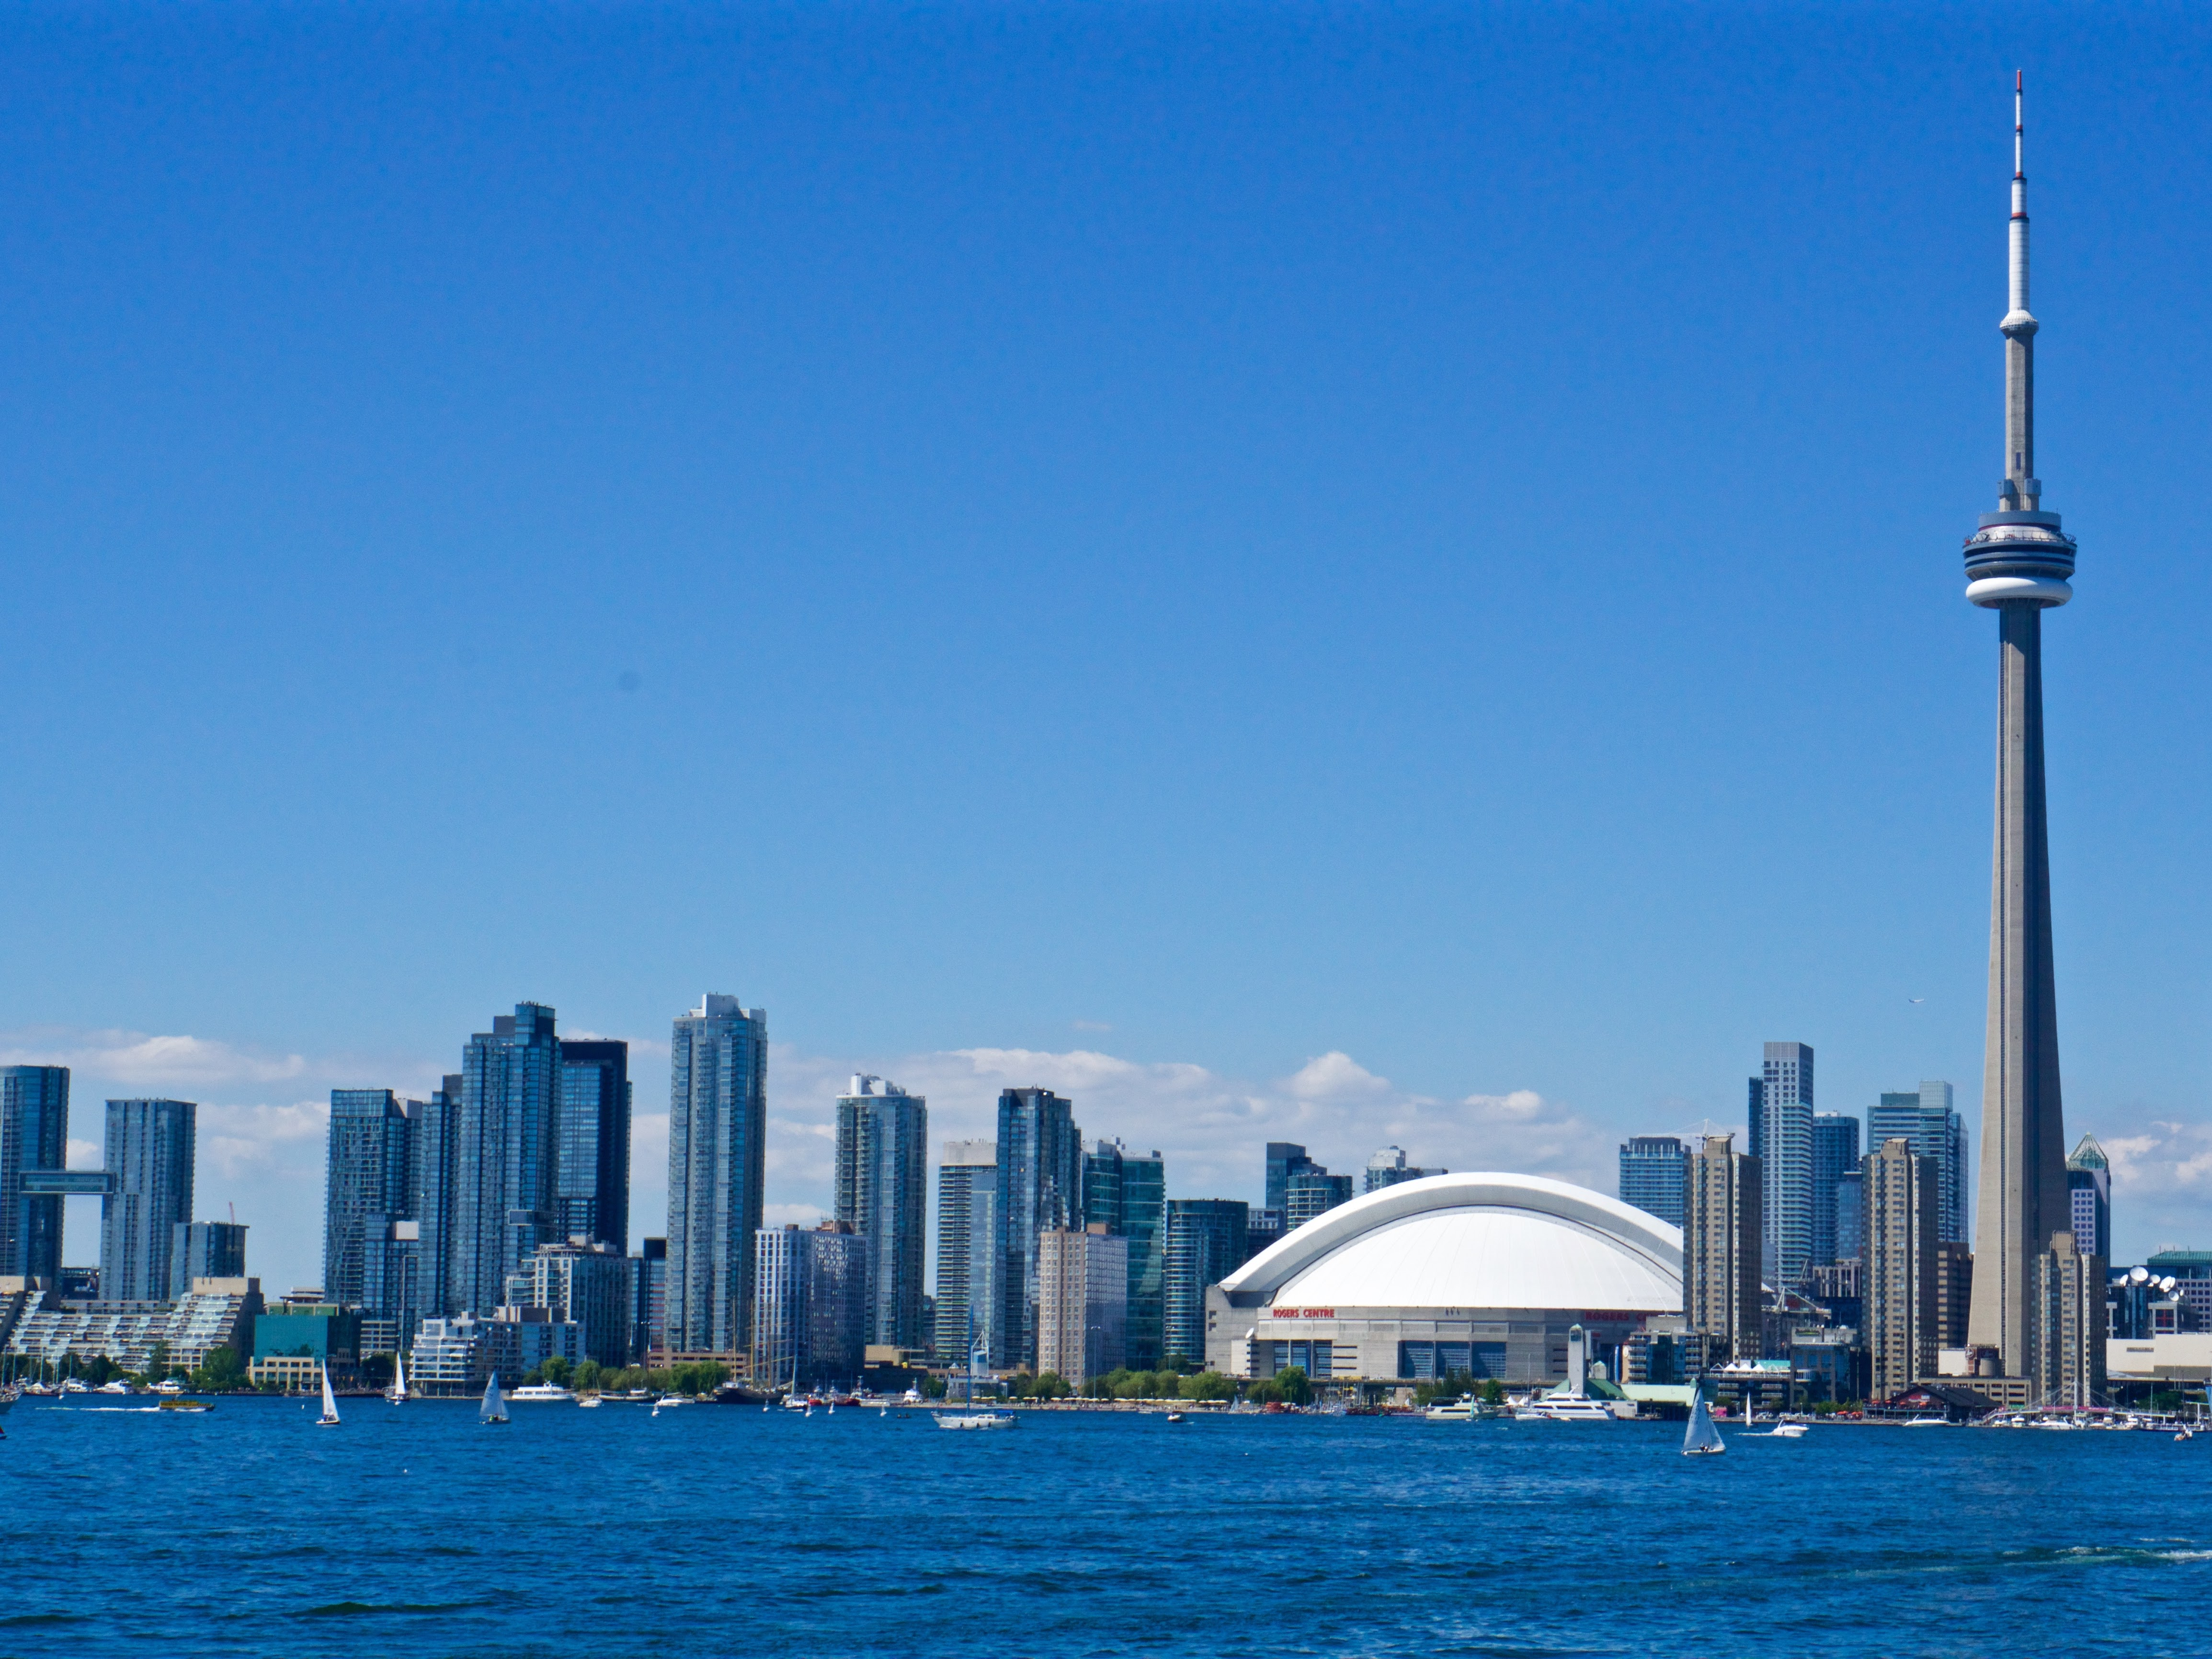 Tech industry has added 51,000 jobs in Toronto since 2010 | MobileSyrup